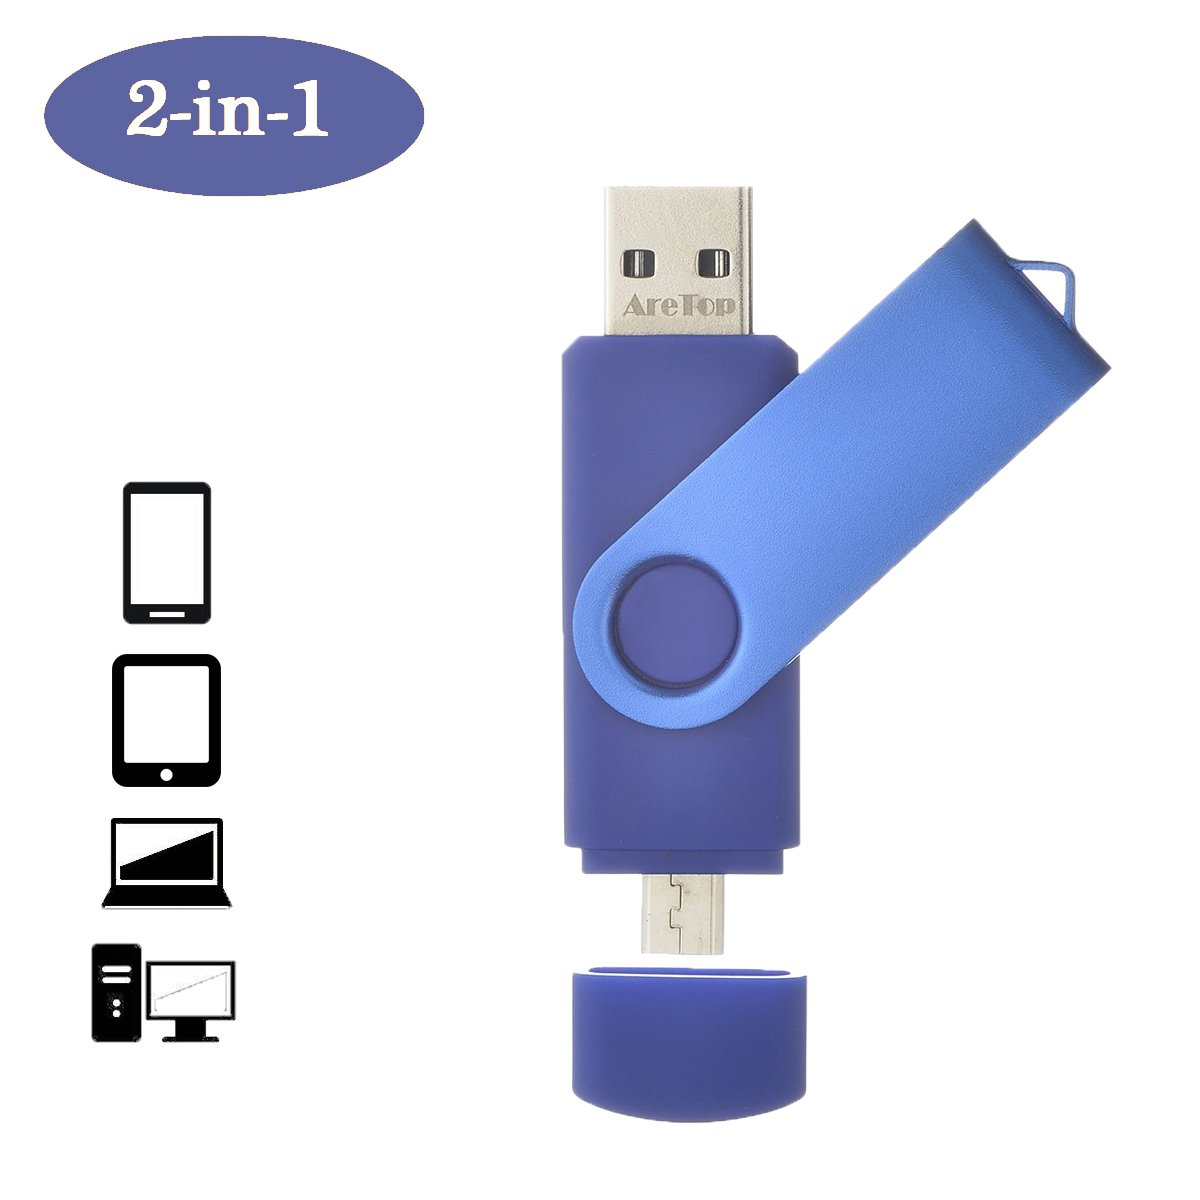 Dual Flash Drive 32GB ARETOP OTG USB2.0 Flash Drive Disk Memory Stick Thumb Drives Pen Drive for Computers and Android Micro Devices (Smartphones Tablets PC Samsung etc. BLUE (Not for Type-C)